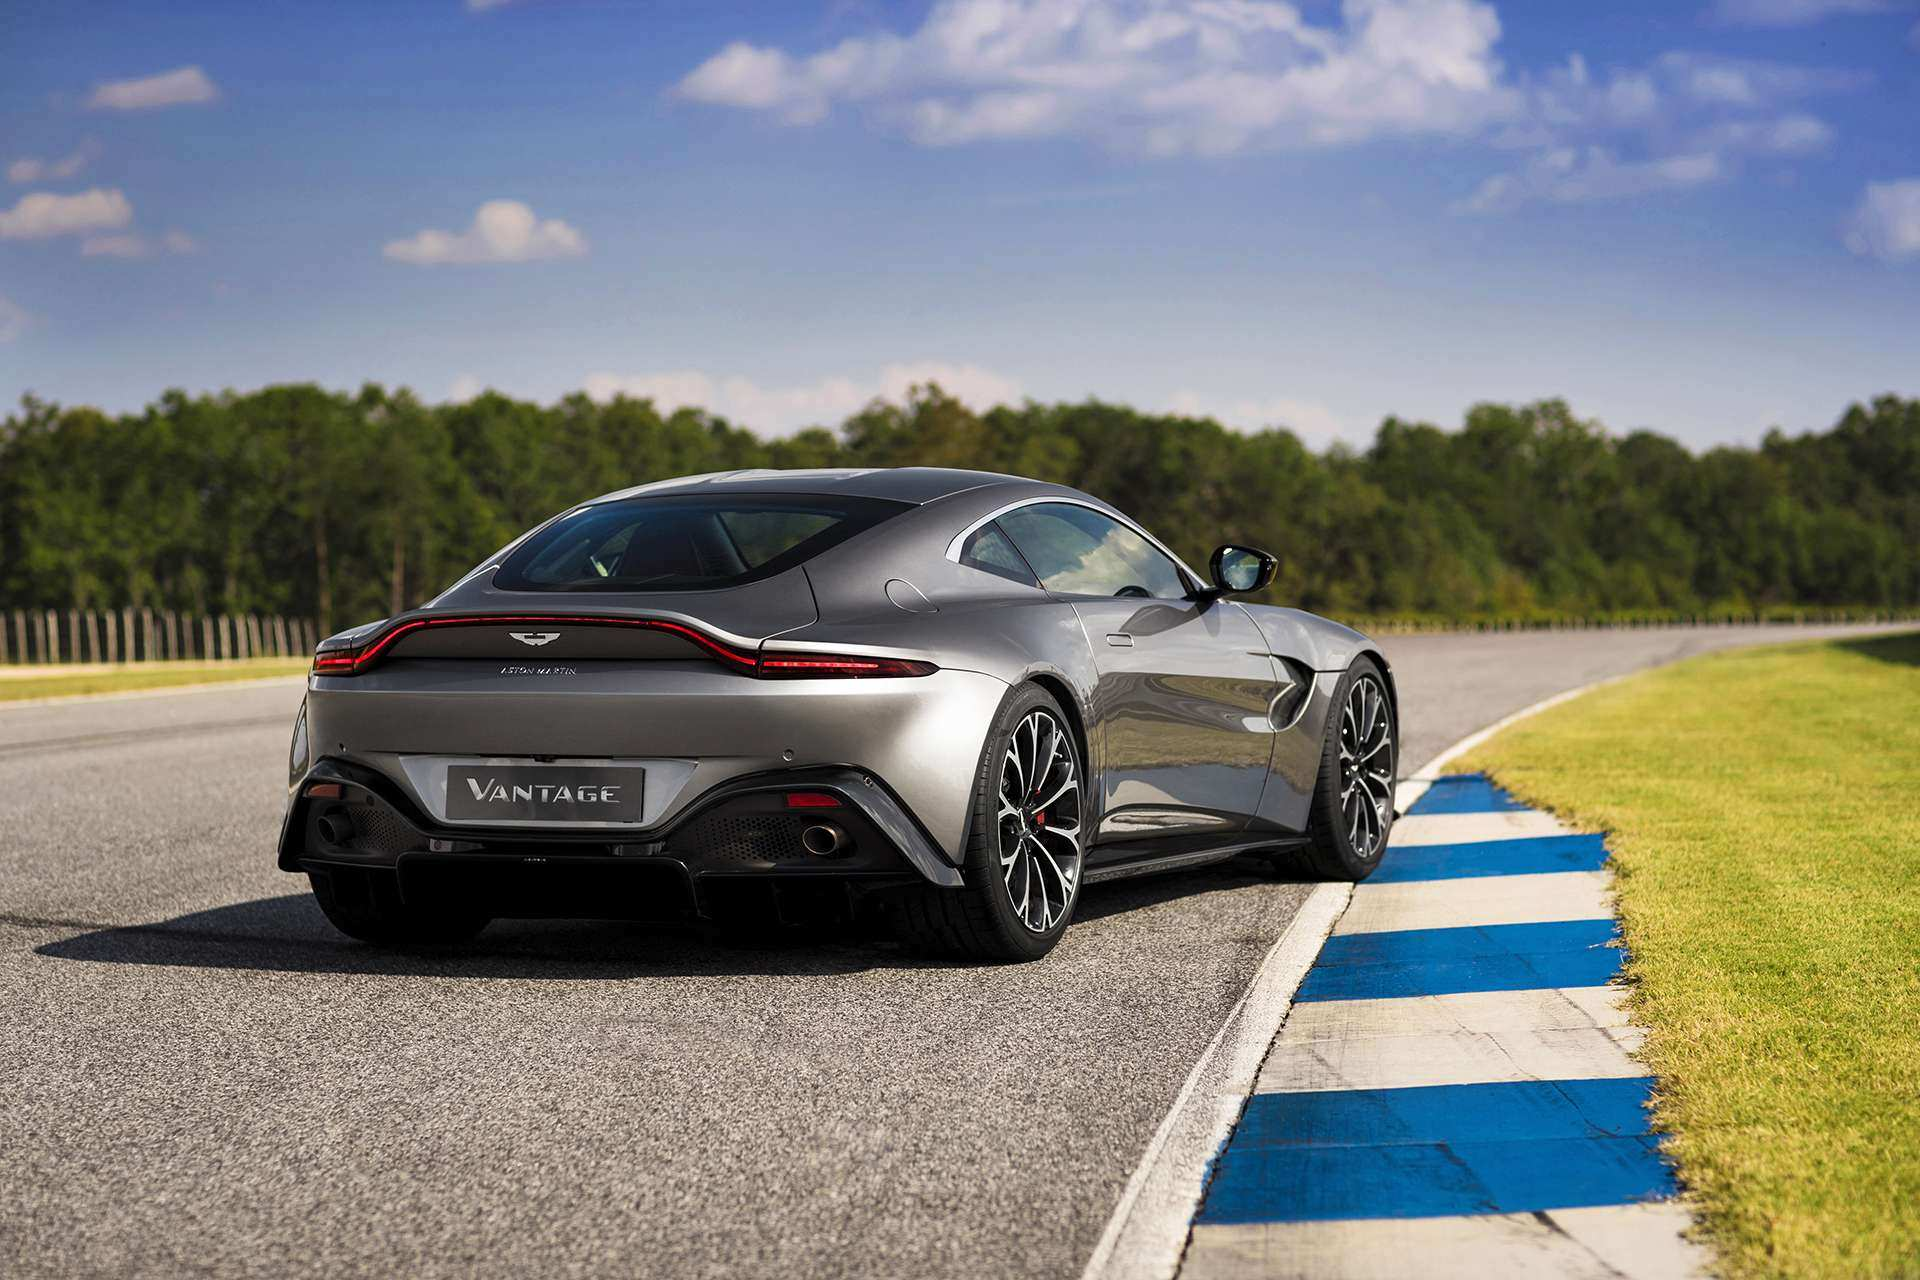 91 All New 2019 Aston Martin Db9 Release Date by 2019 Aston Martin Db9